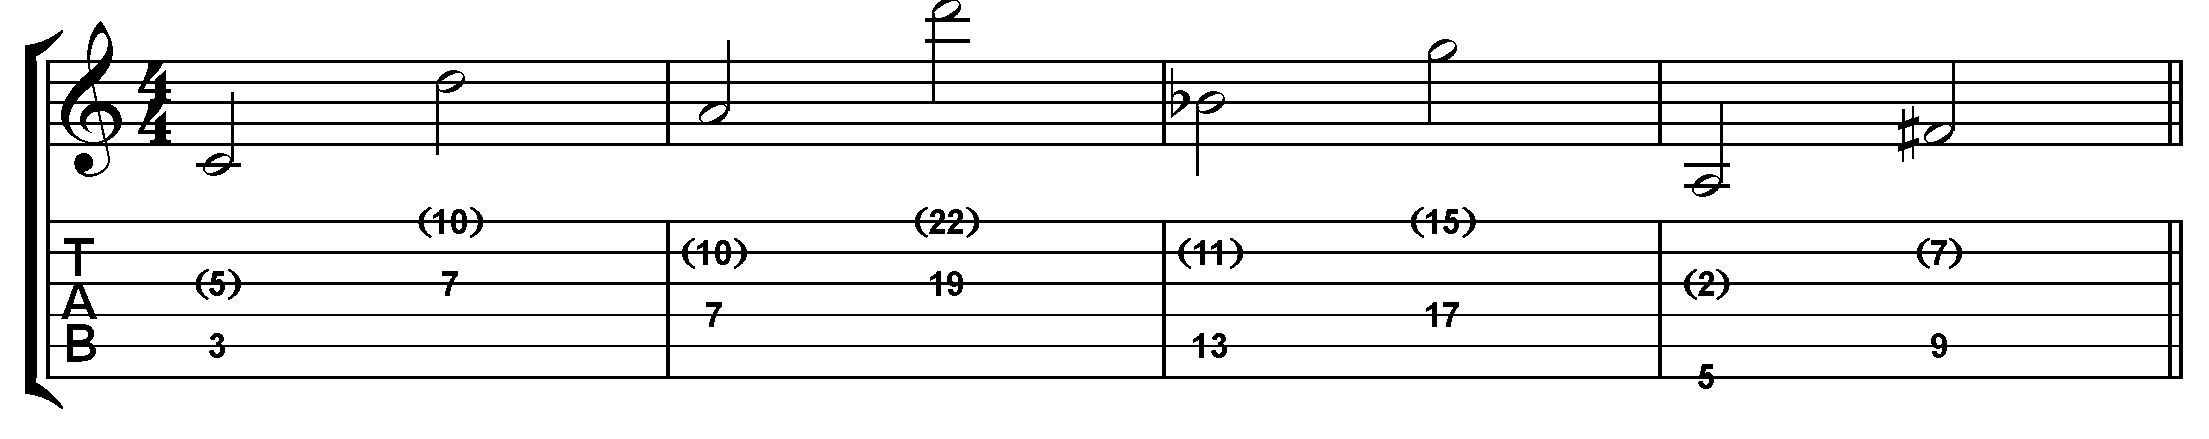 Sight Reading Part 7 – Playing up an octave on guitar - Fundamental